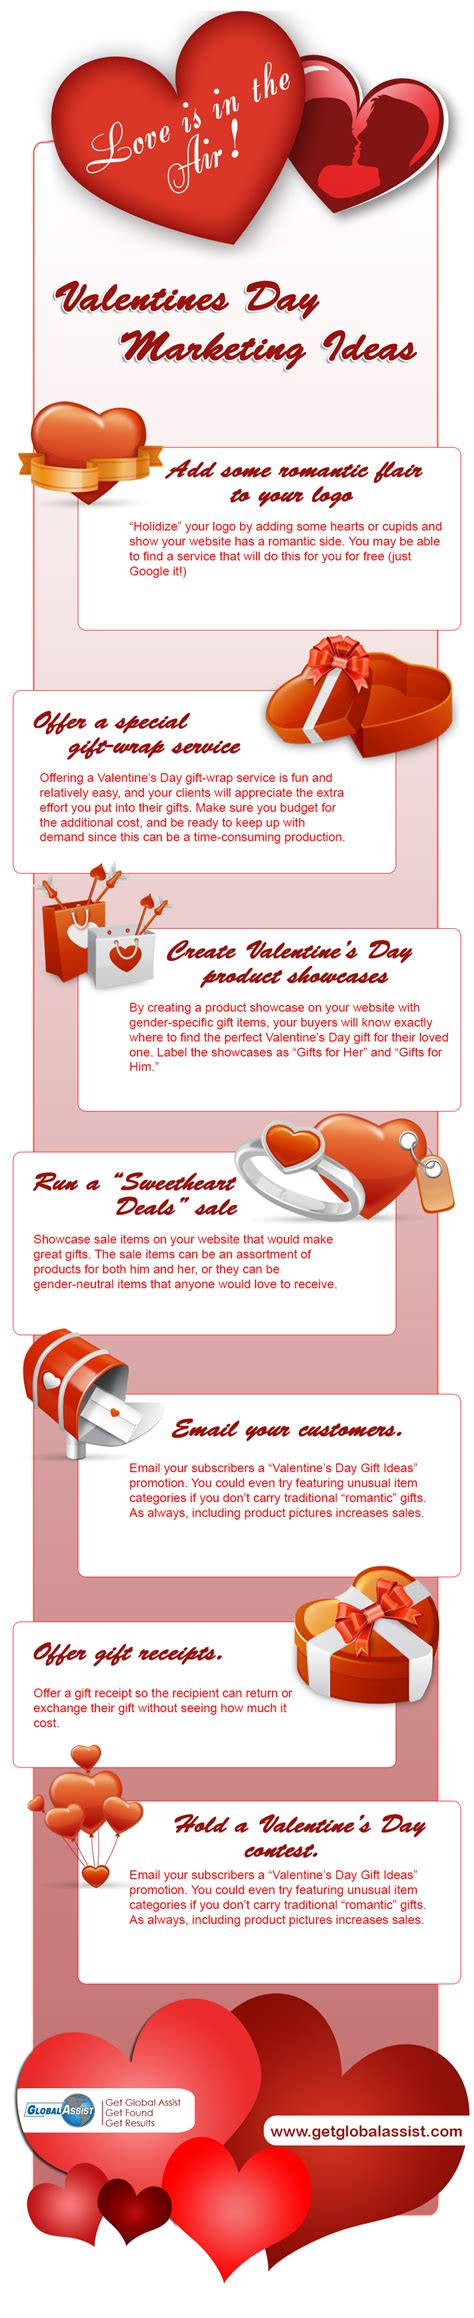 valentine s day marketing ideas global assist